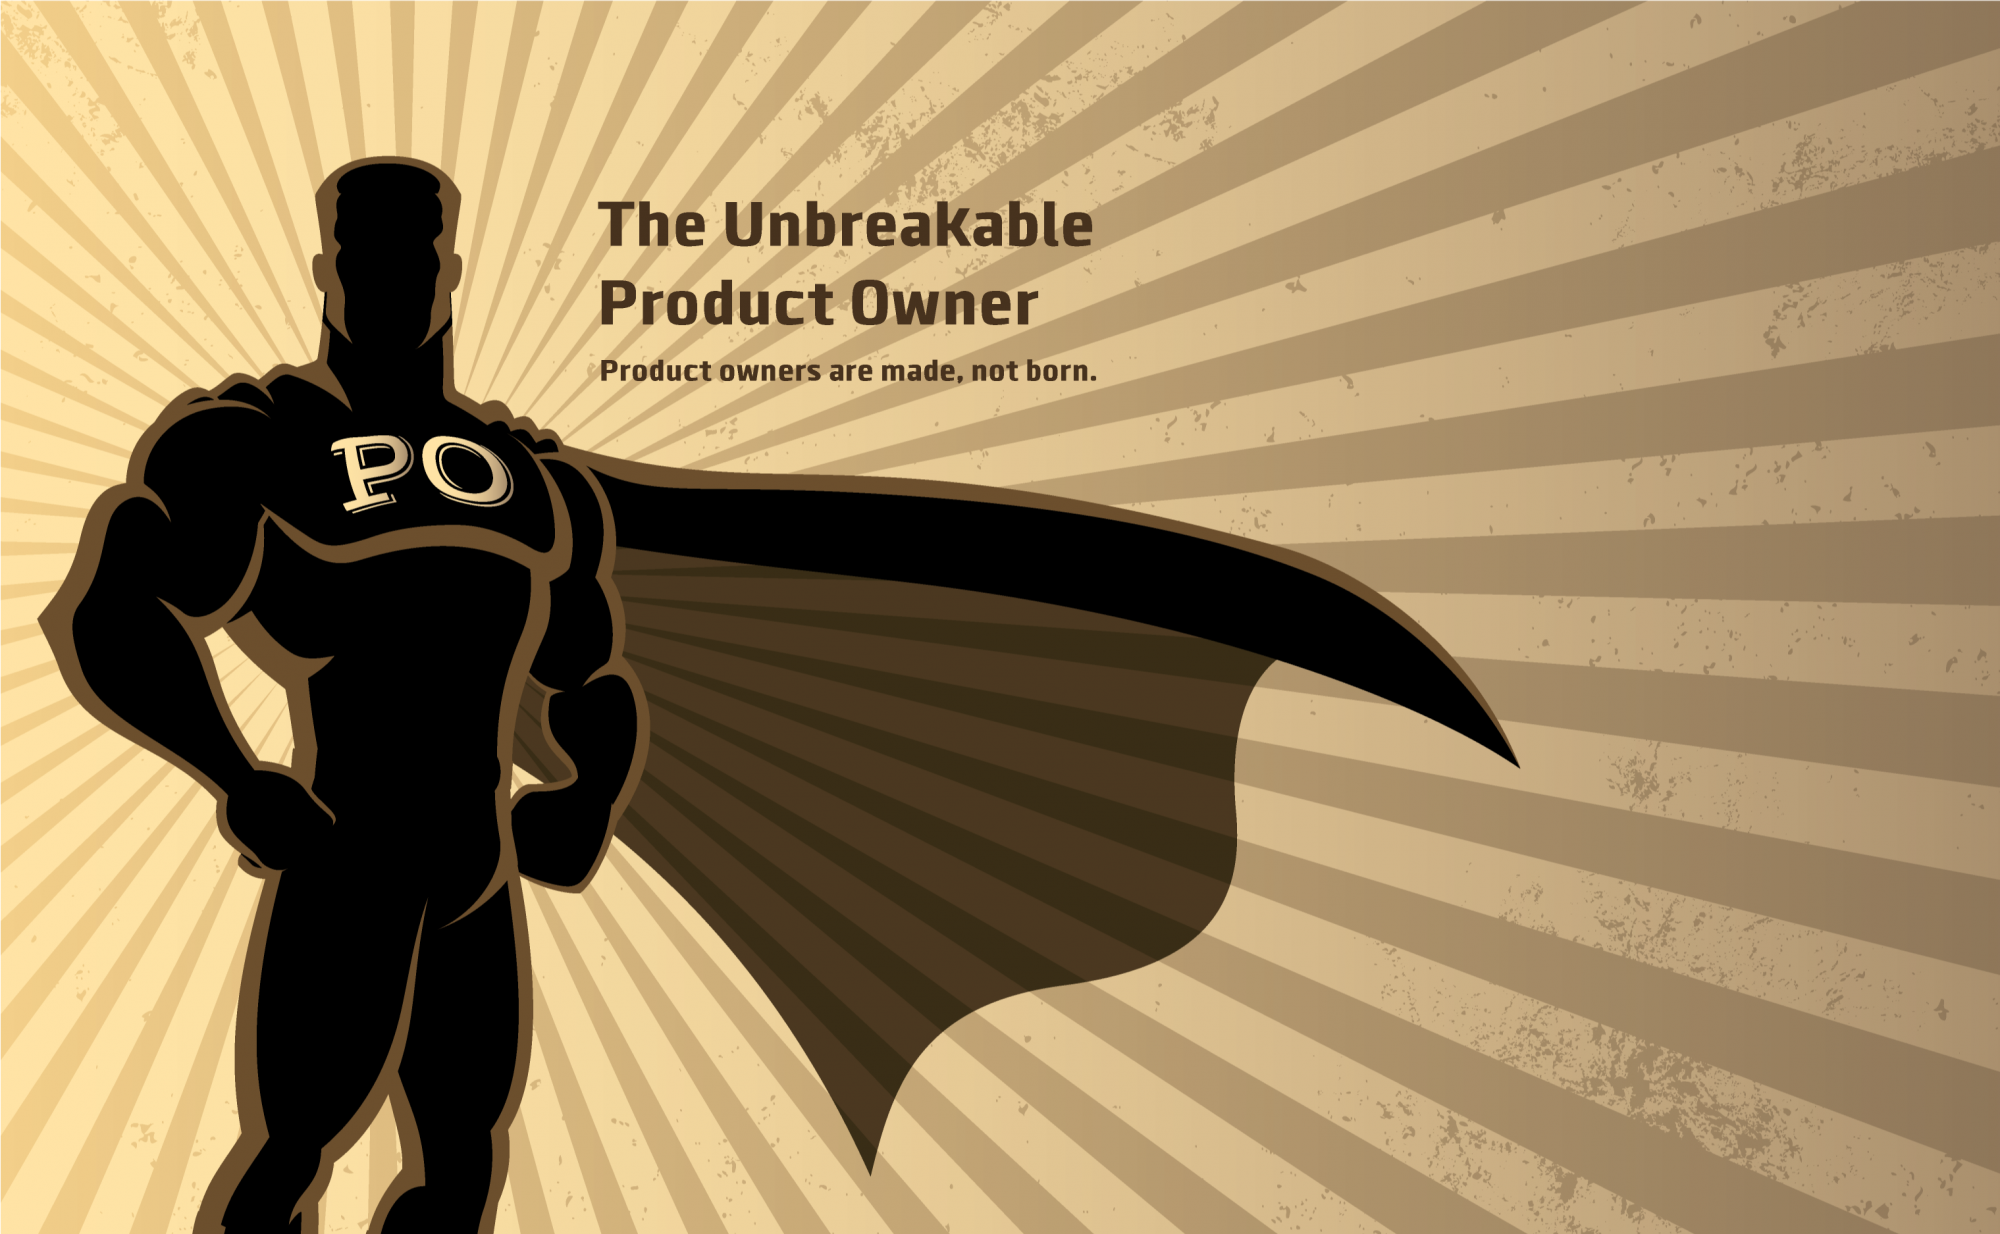 The Unbreakable Product Owner